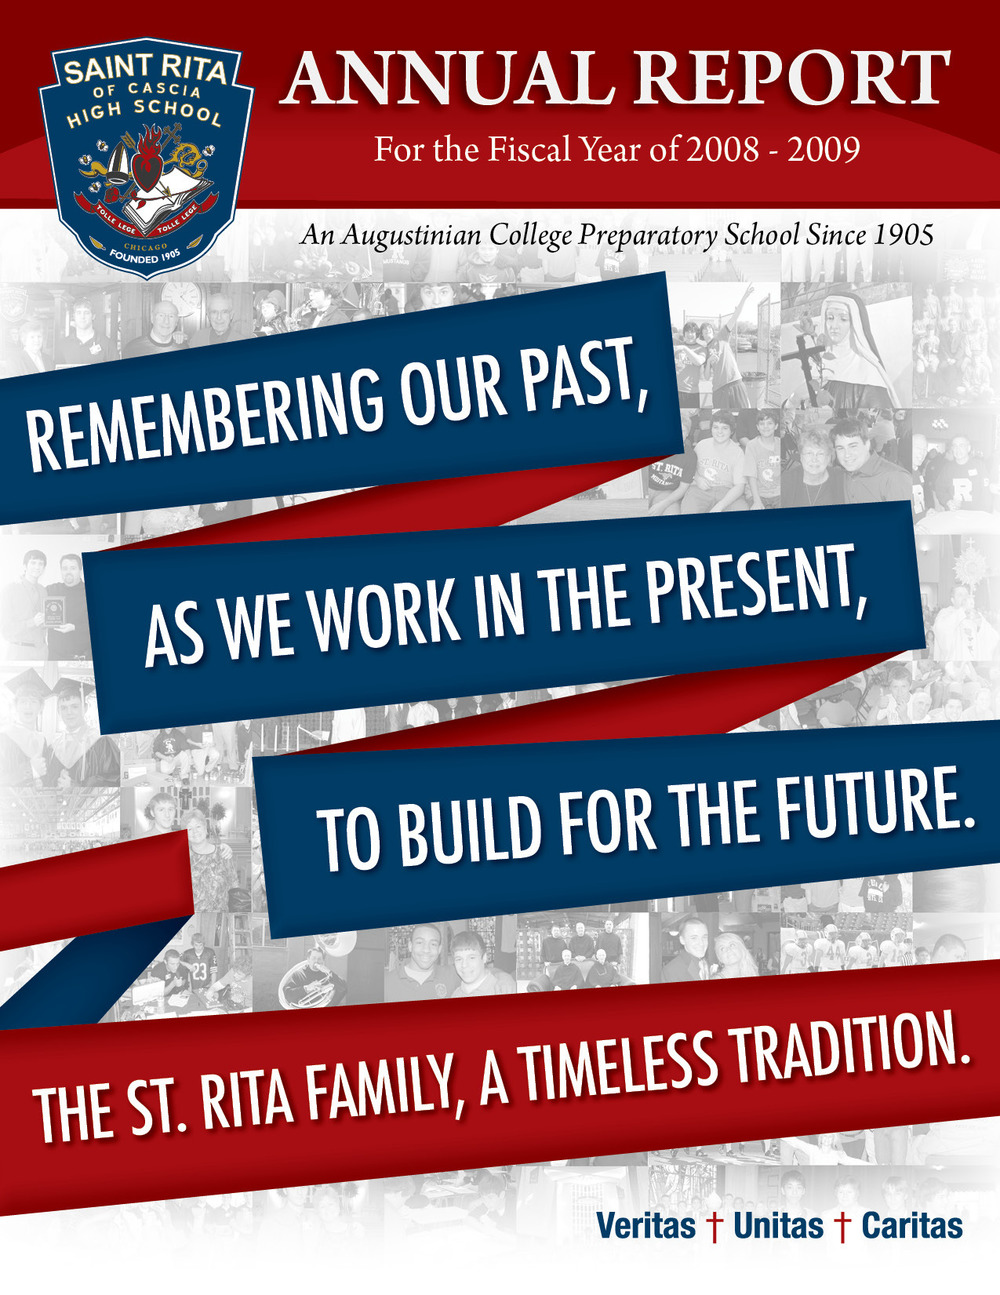 08-09 St. Rita Annual Report-1.jpg